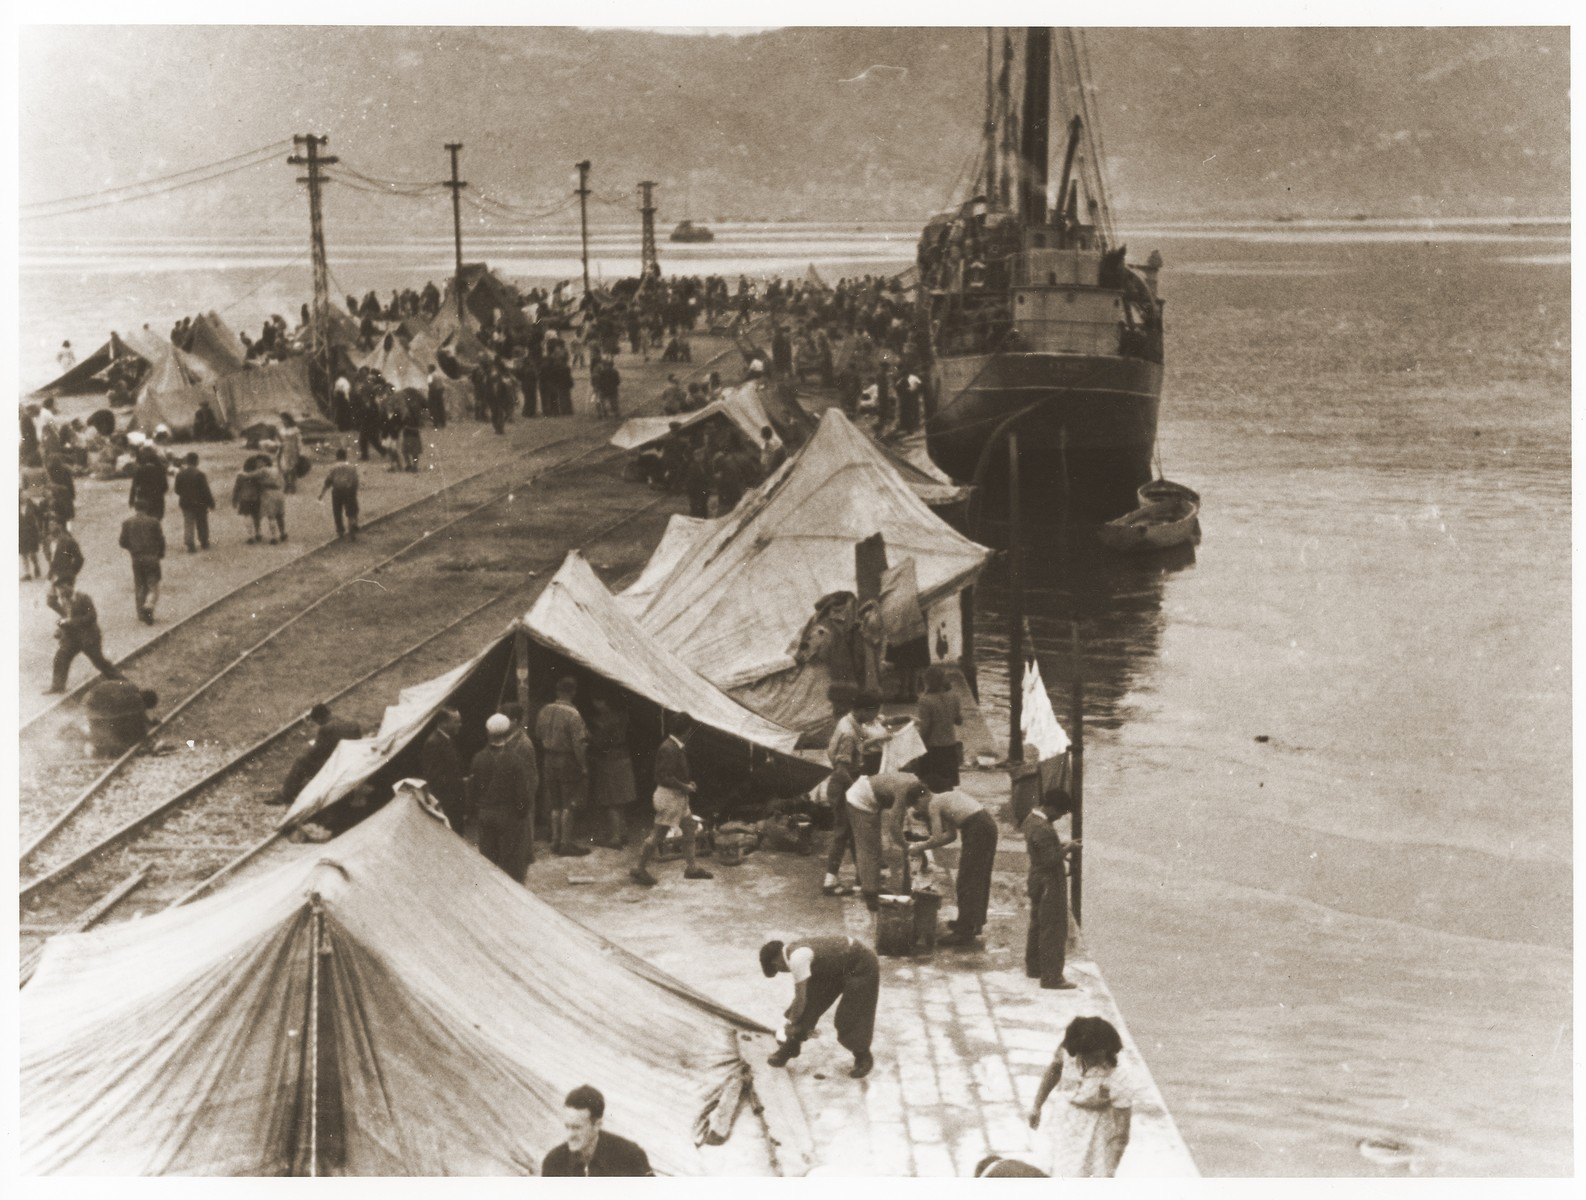 Jewish DPs pitching tents on the pier in La Spezia harbor, where they are holding a hunger strike to protest Britain's refusal to let them sail to Palestine.